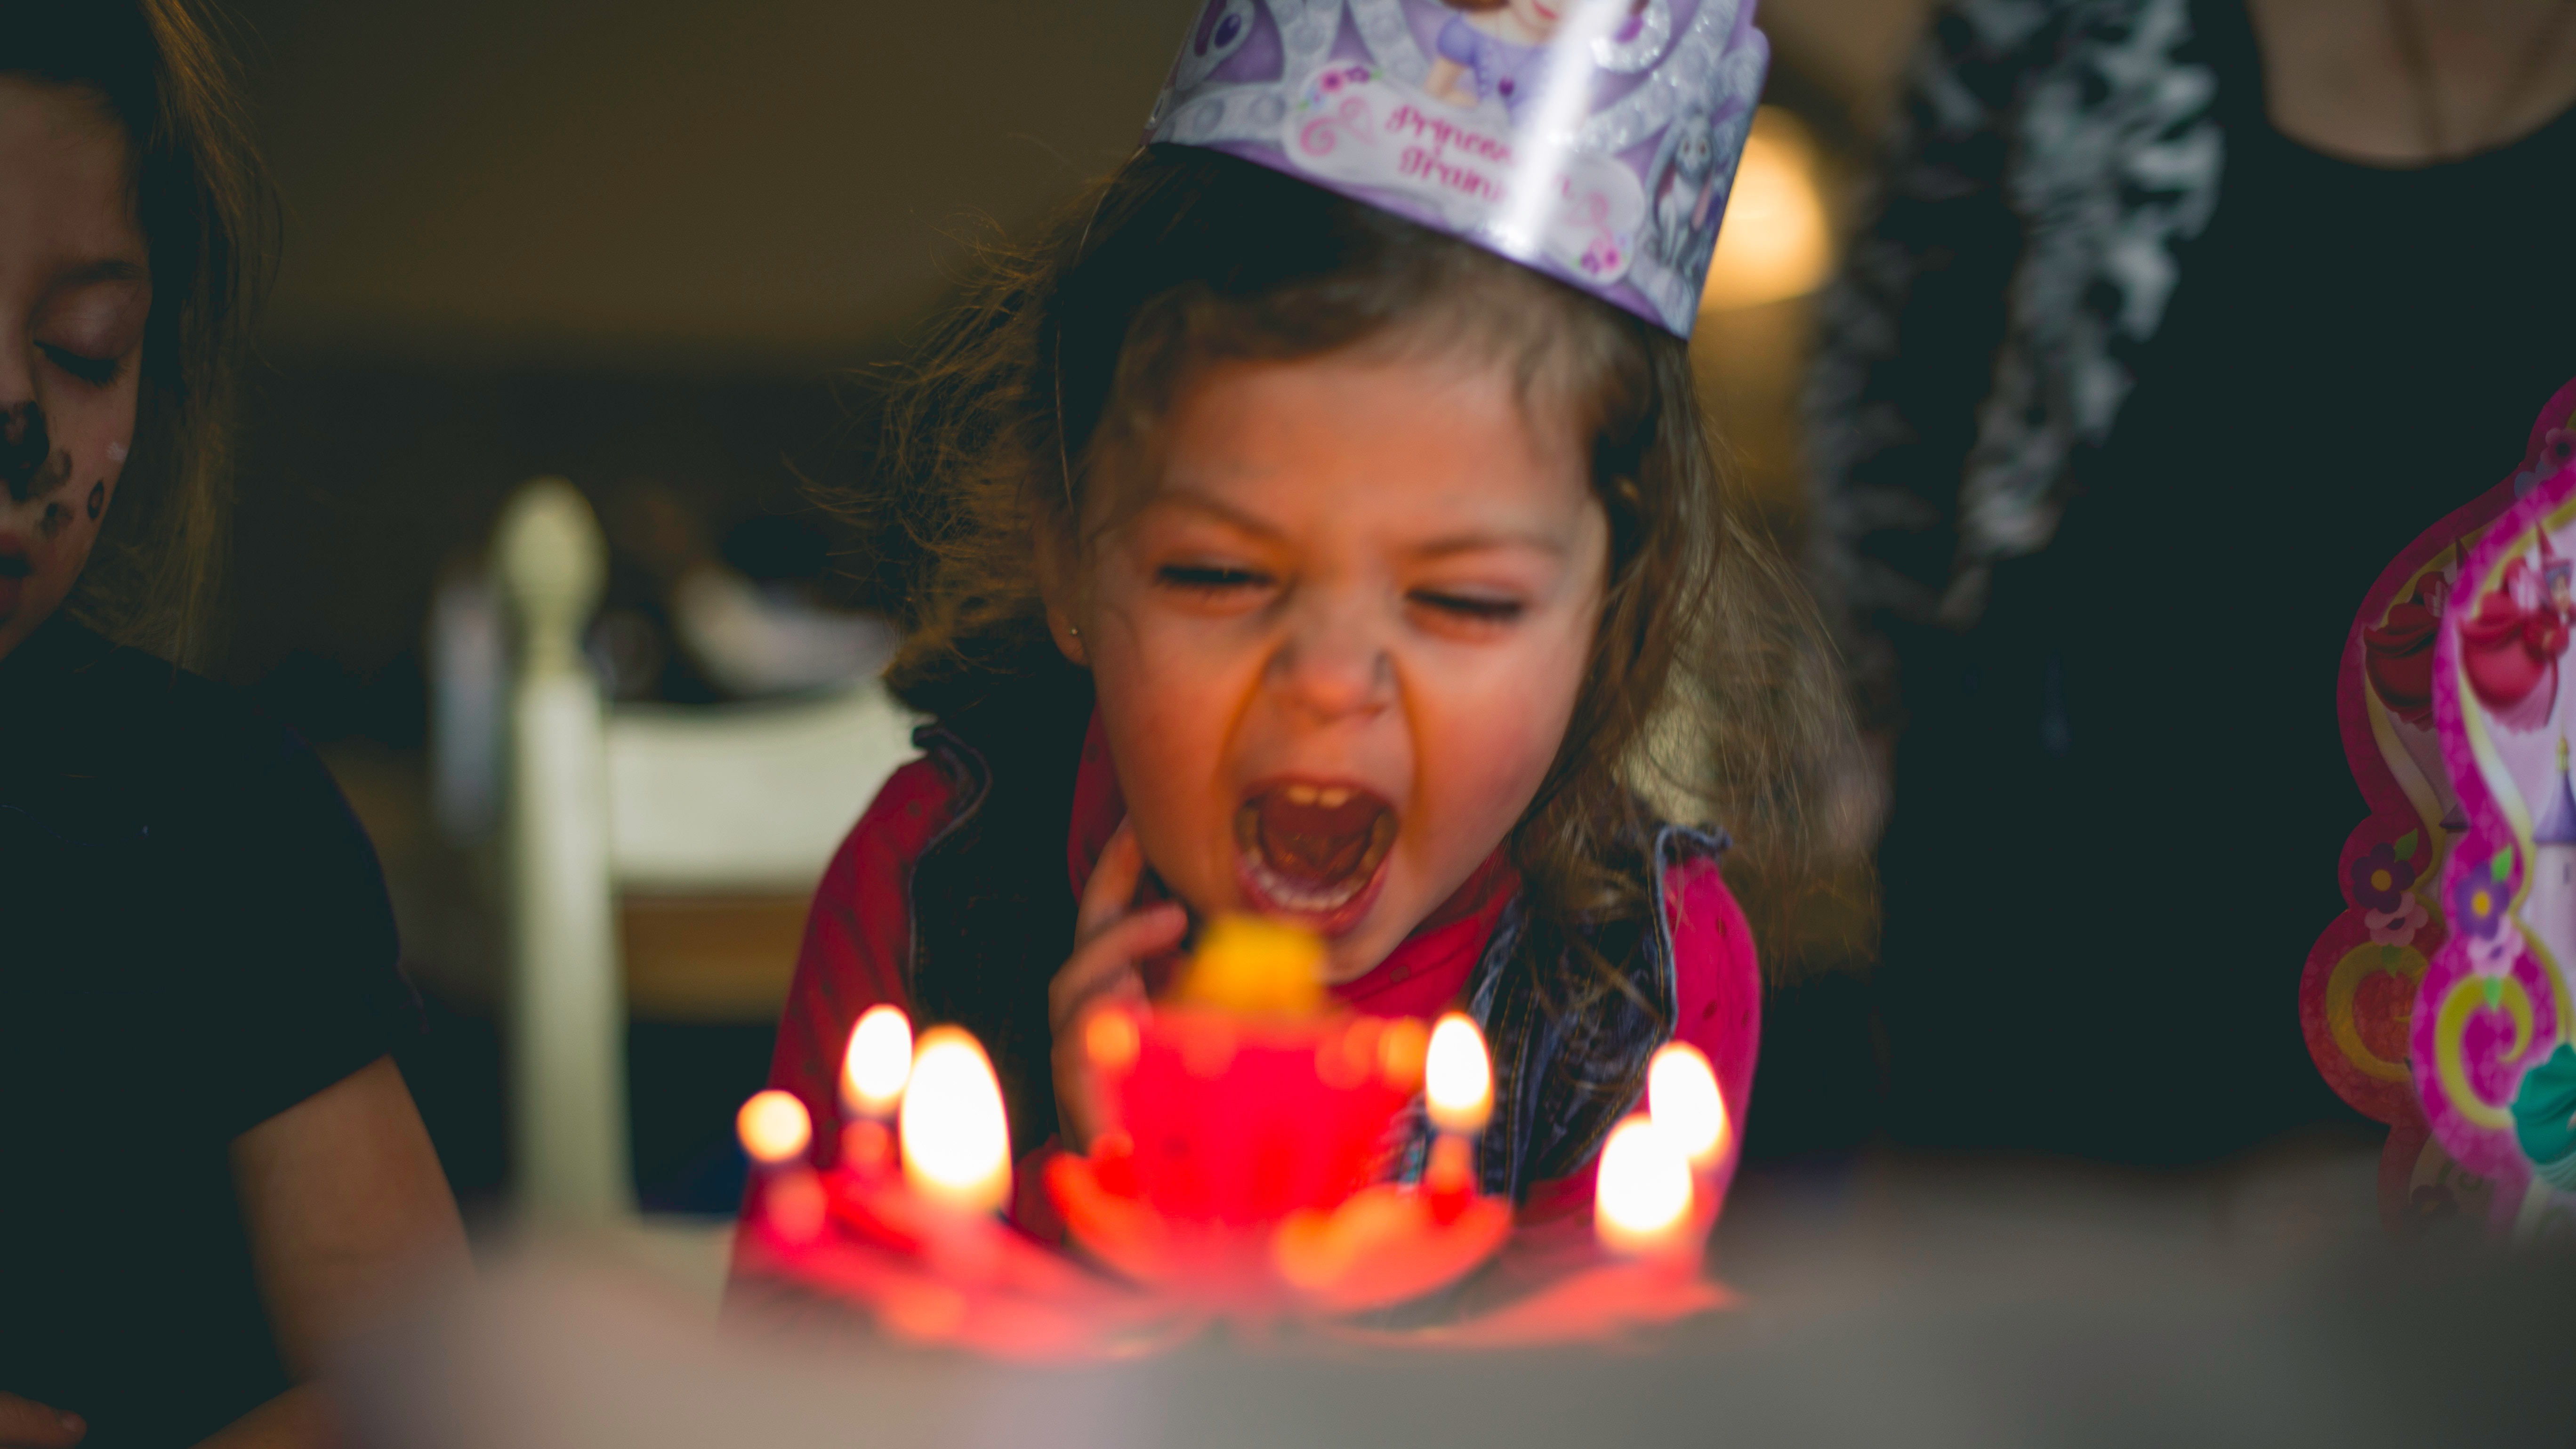 A young girl with a birthday hat is yelling in front of a cake with several lit candles.